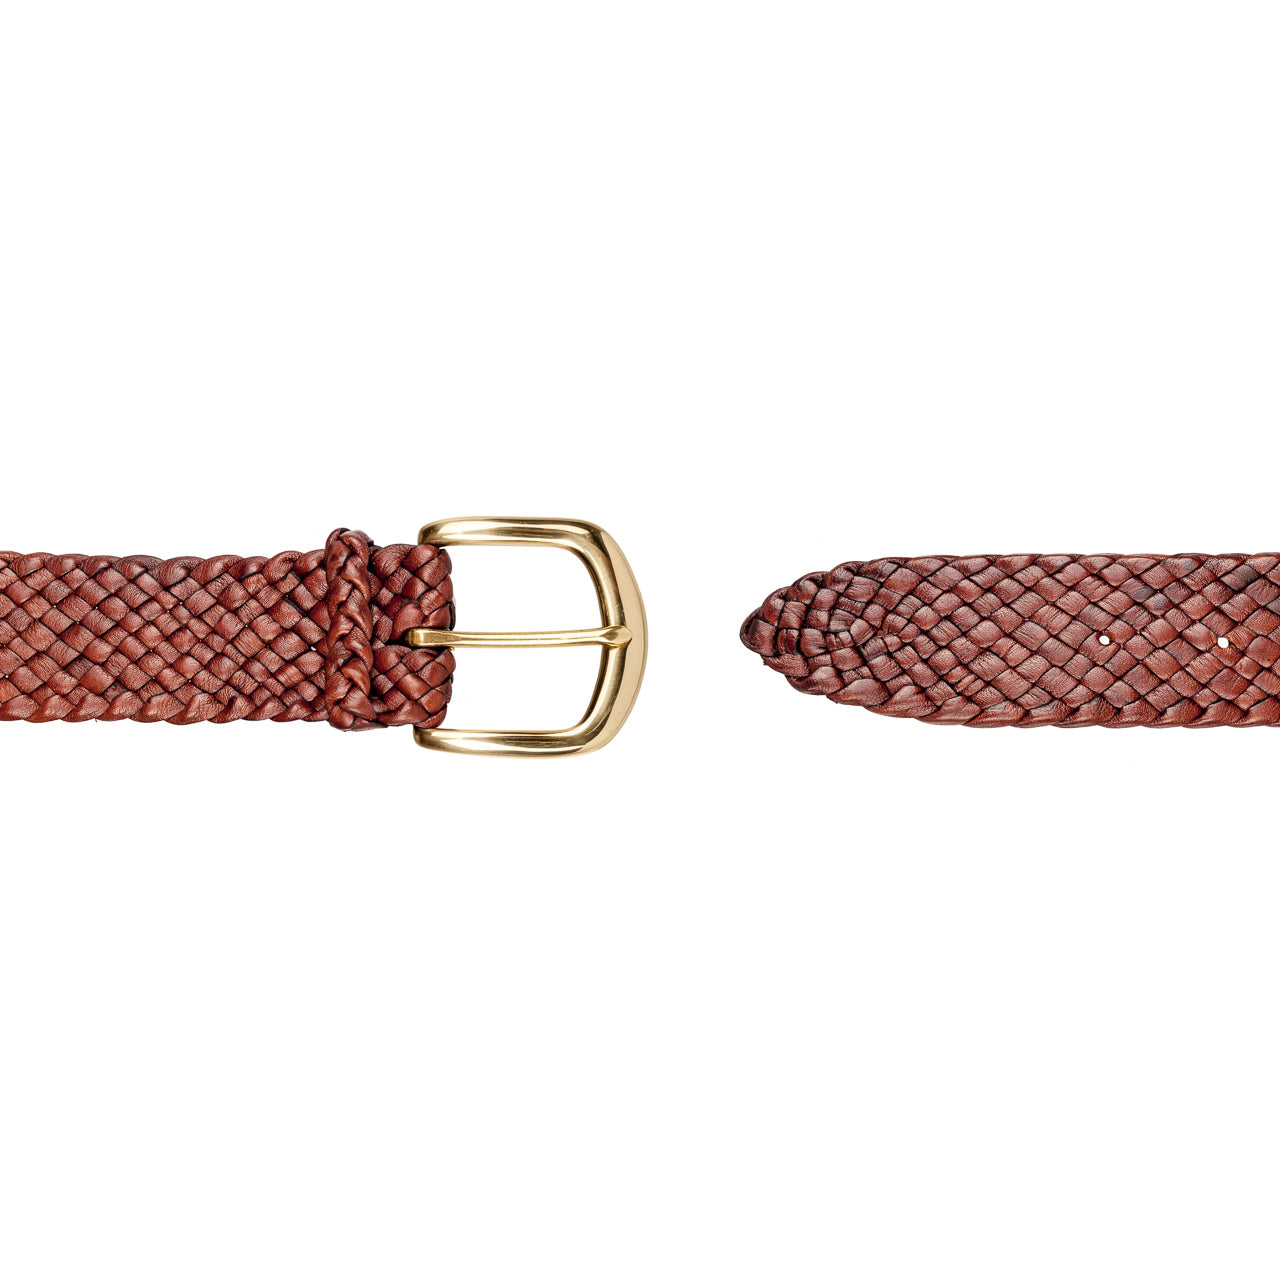 Jumbuck Kangaroo Plaited Belt (38mm Wide)